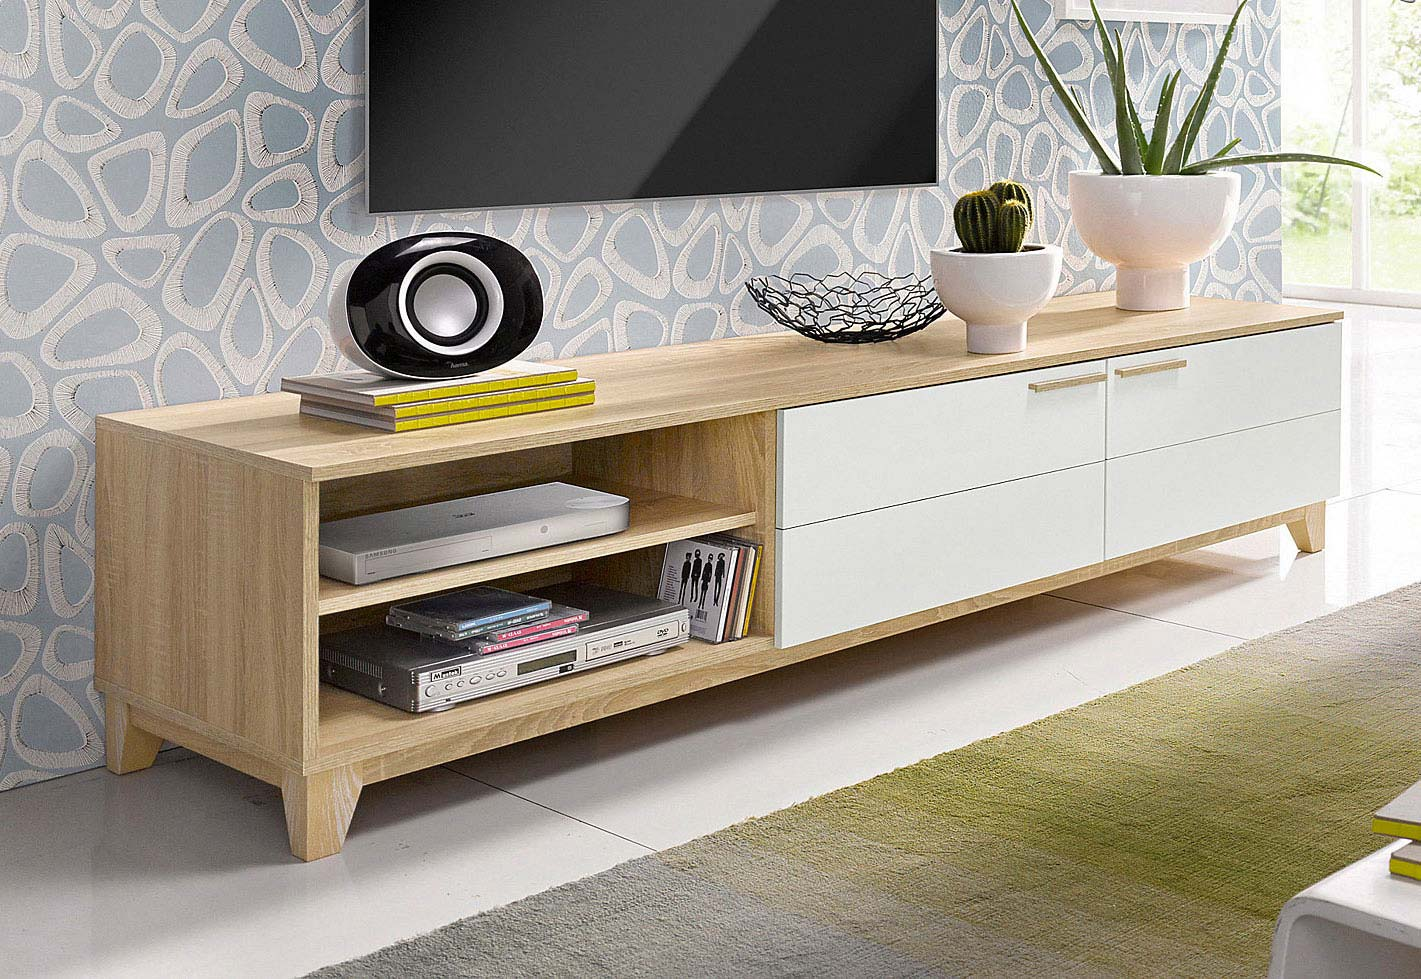 Meuble tv scandinave moderne for Meuble tv banc bois